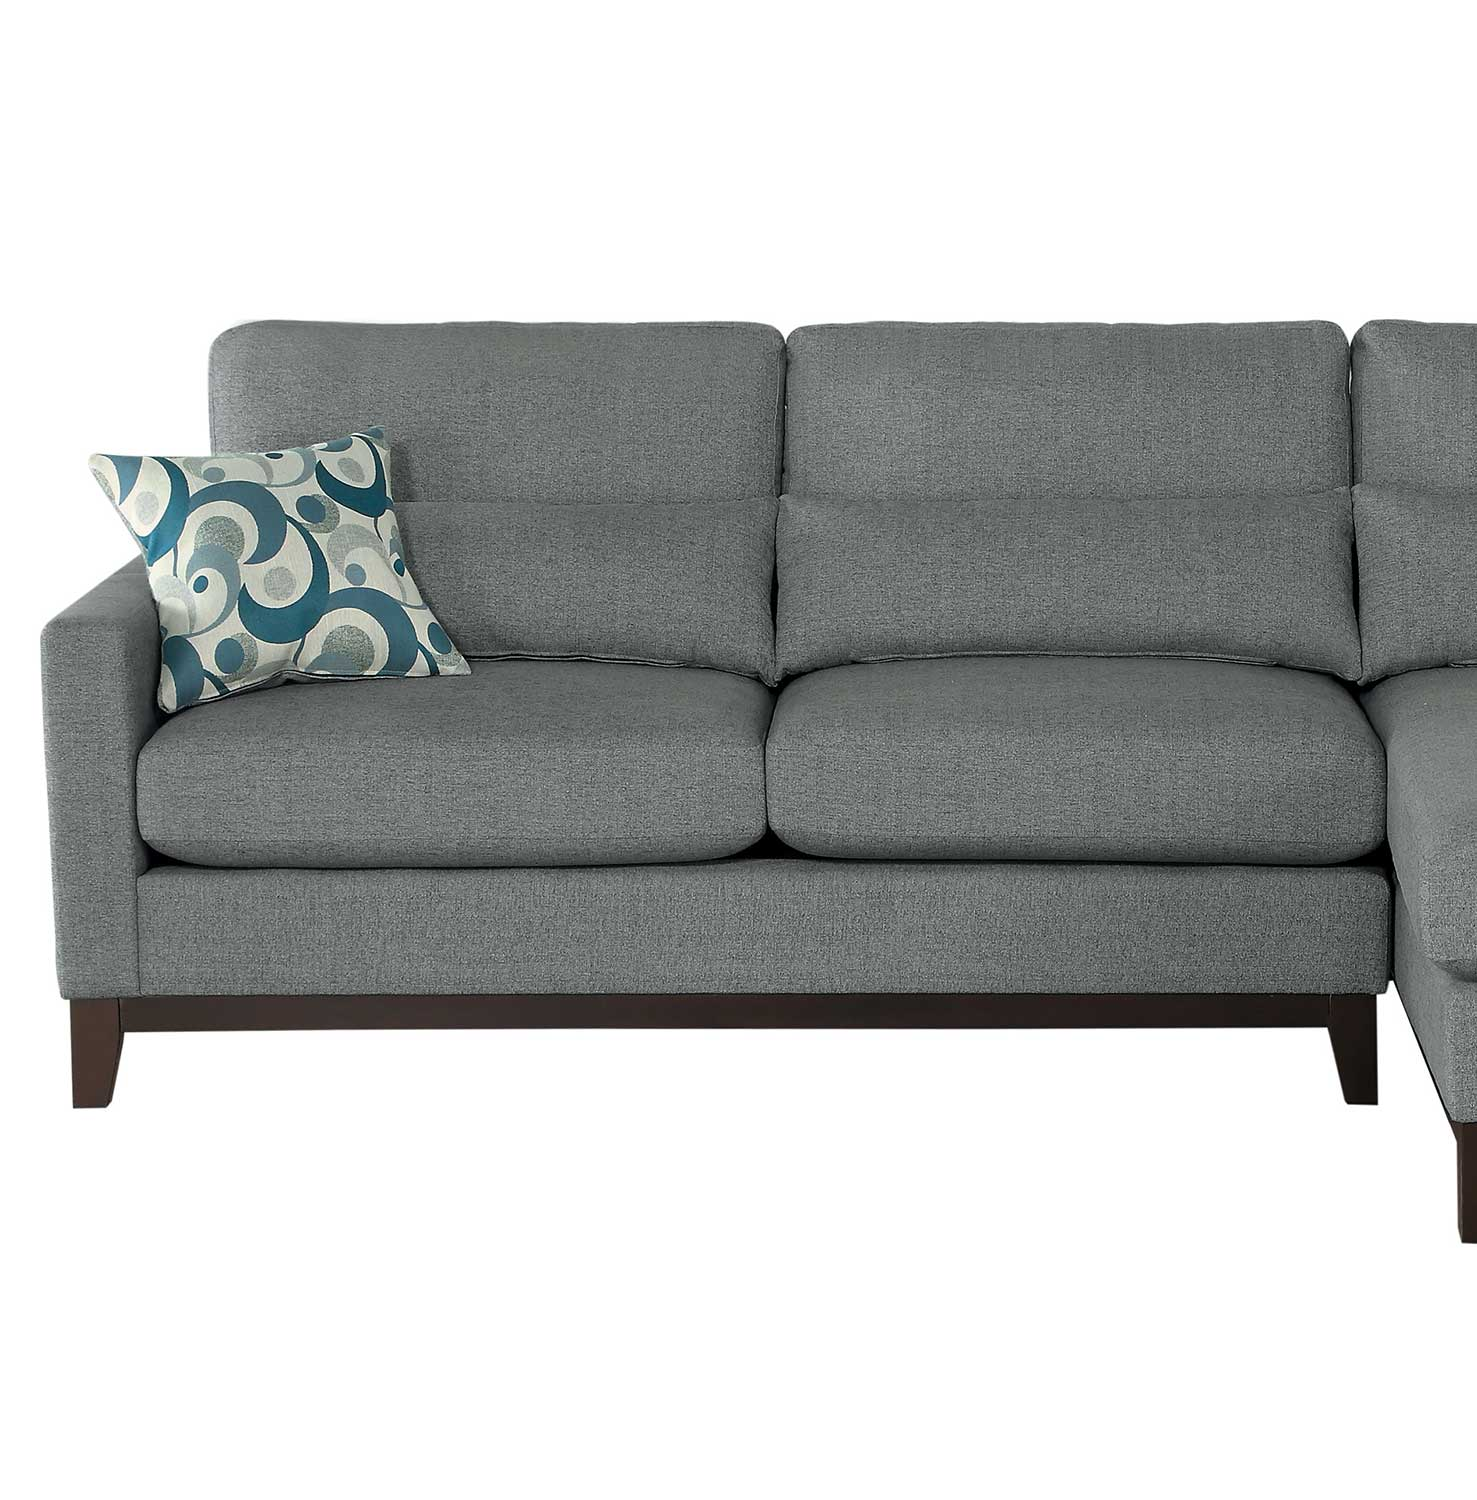 Homelegance Greerman Left Side 2-Seater - Gray